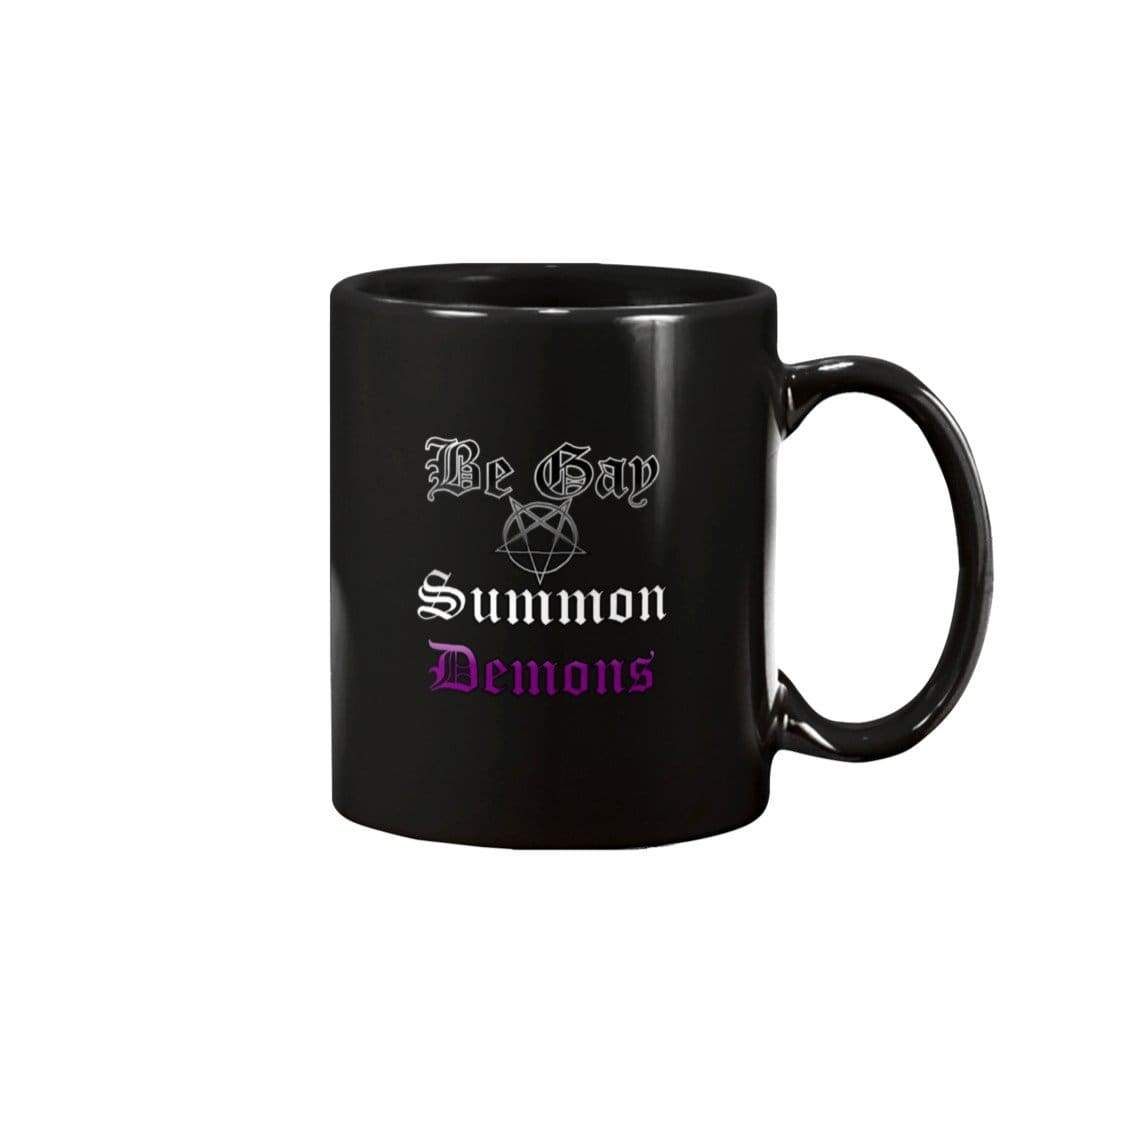 Dice Priori Be Gay Summon Demons Ace 15oz Coffee Mug - Black / 15OZ - Mugs